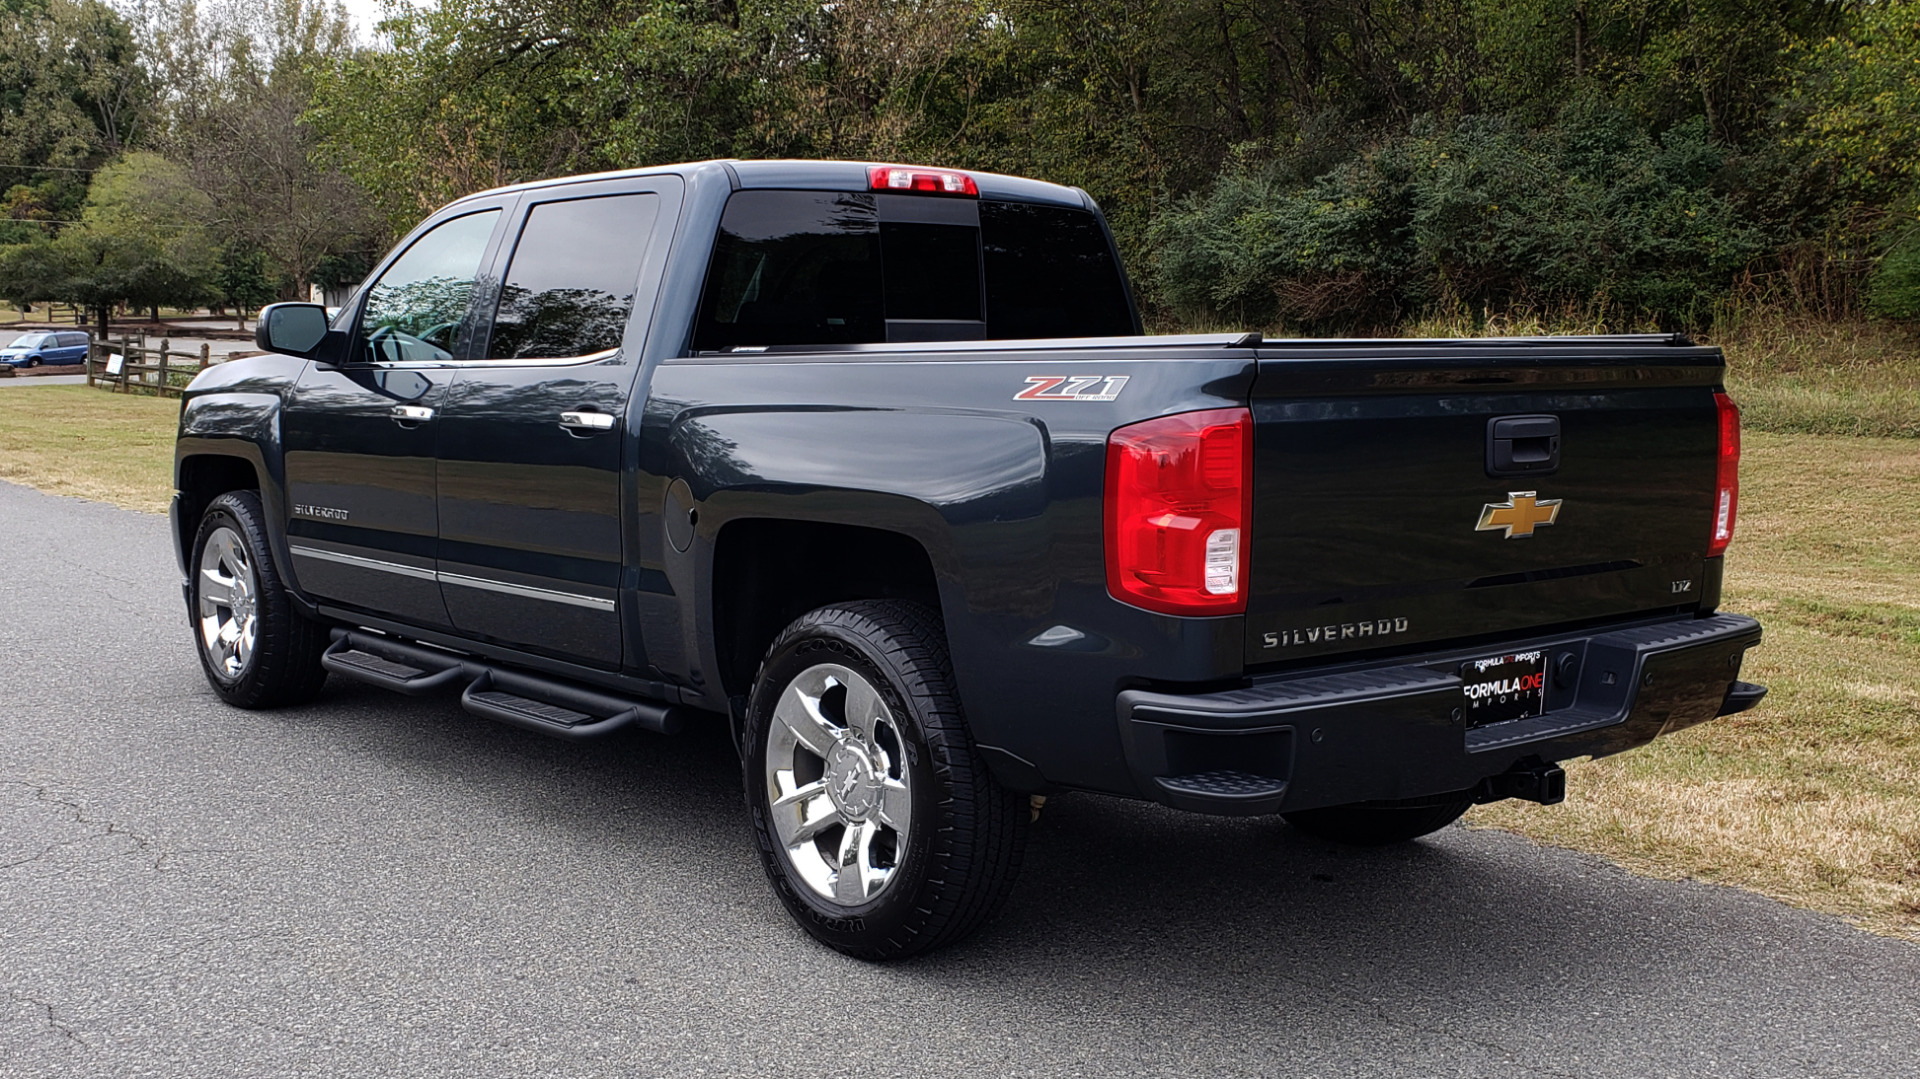 Used 2017 Chevrolet SILVERADO 1500 LTZ 4WD / NAV / BOSE / LEATHER / CAMERA / LOADED for sale Sold at Formula Imports in Charlotte NC 28227 12